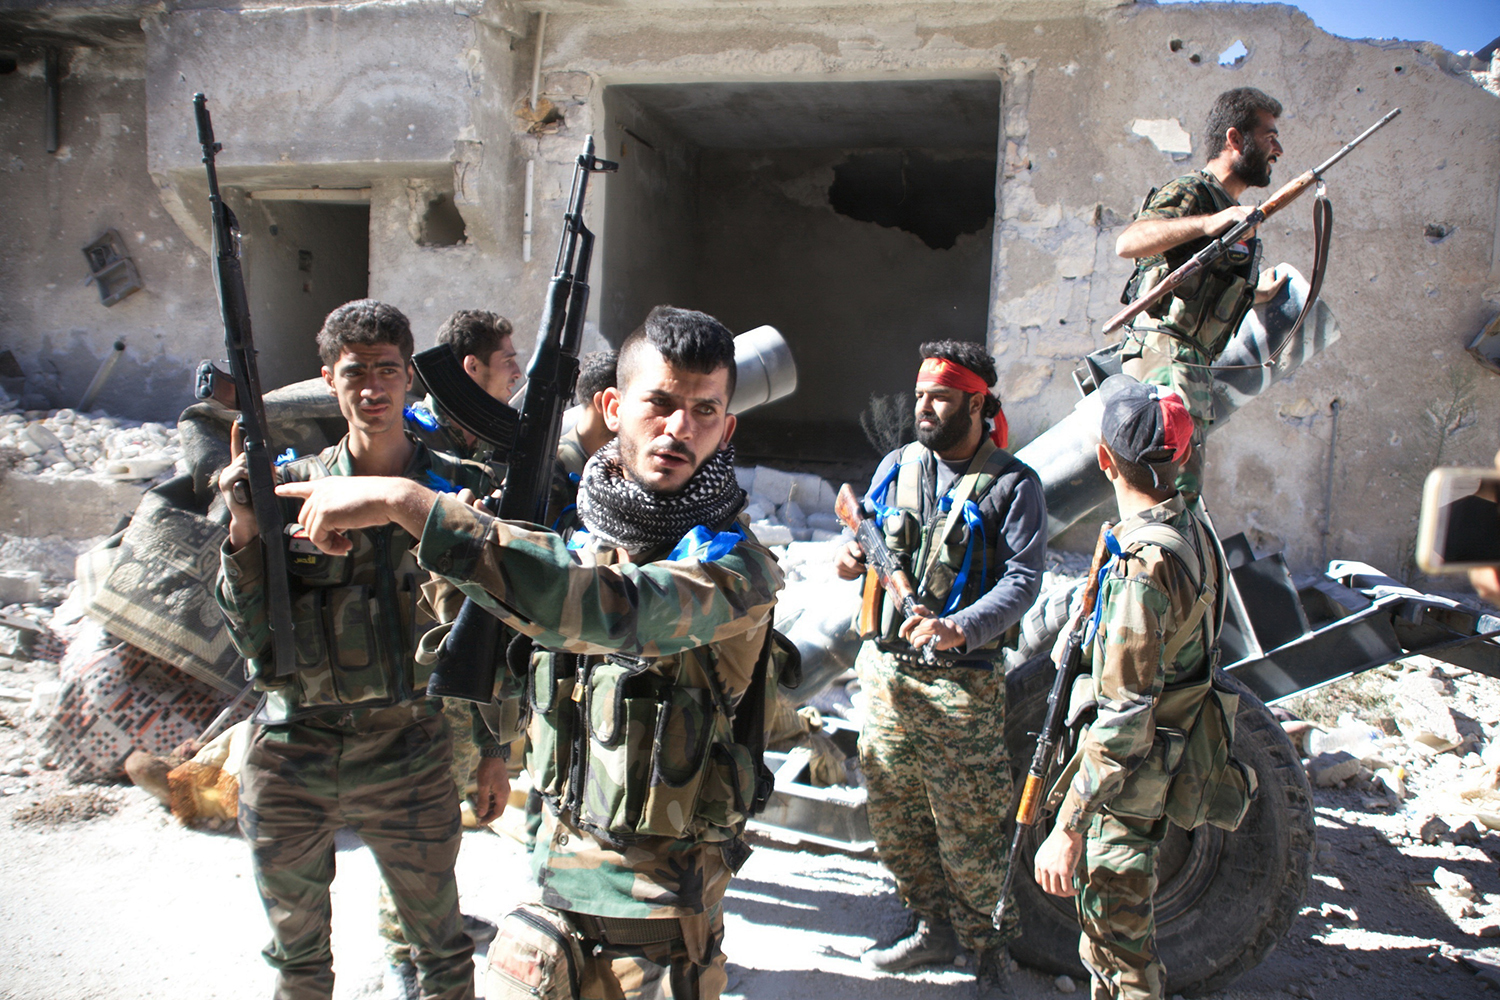 TOPSHOT - Syrian government forces gather in the largely deserted Palestinian refugee camp of Handarat, north of Aleppo, on September 24, 2016 after they captured the area following multiple Russian air strikes. Syrian regime forces had been fighting to take the camp for months because it is on high ground that overlooks the rebel-held east of the embattled city of Aleppo. / AFP PHOTO / GEORGE OURFALIAN / TT / kod 444